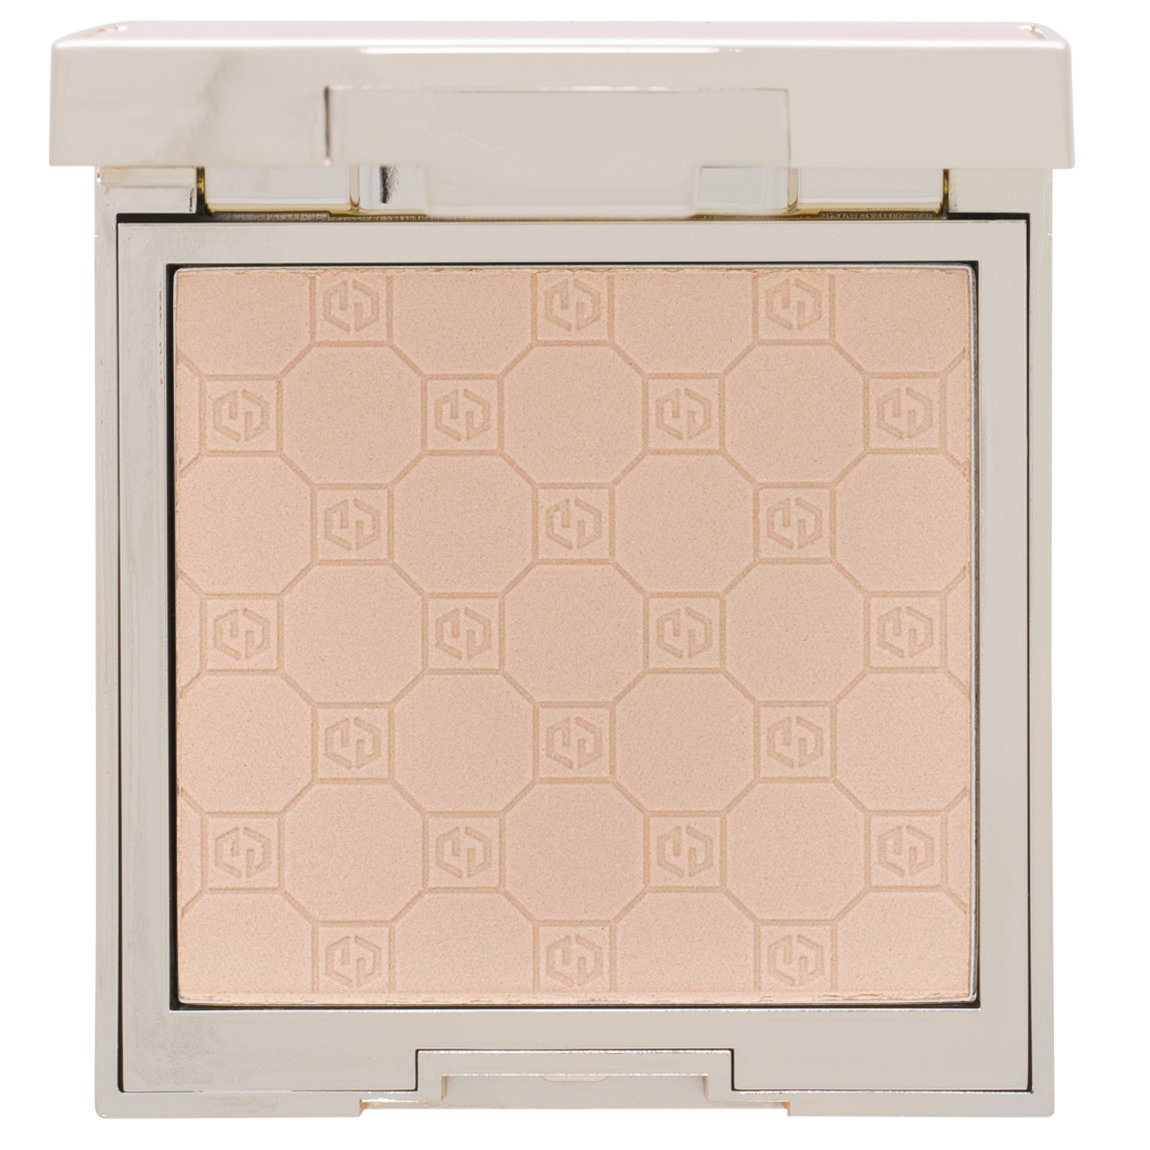 Jouer Cosmetics Soft Focus Hydrate + Set Powder Fair product smear.